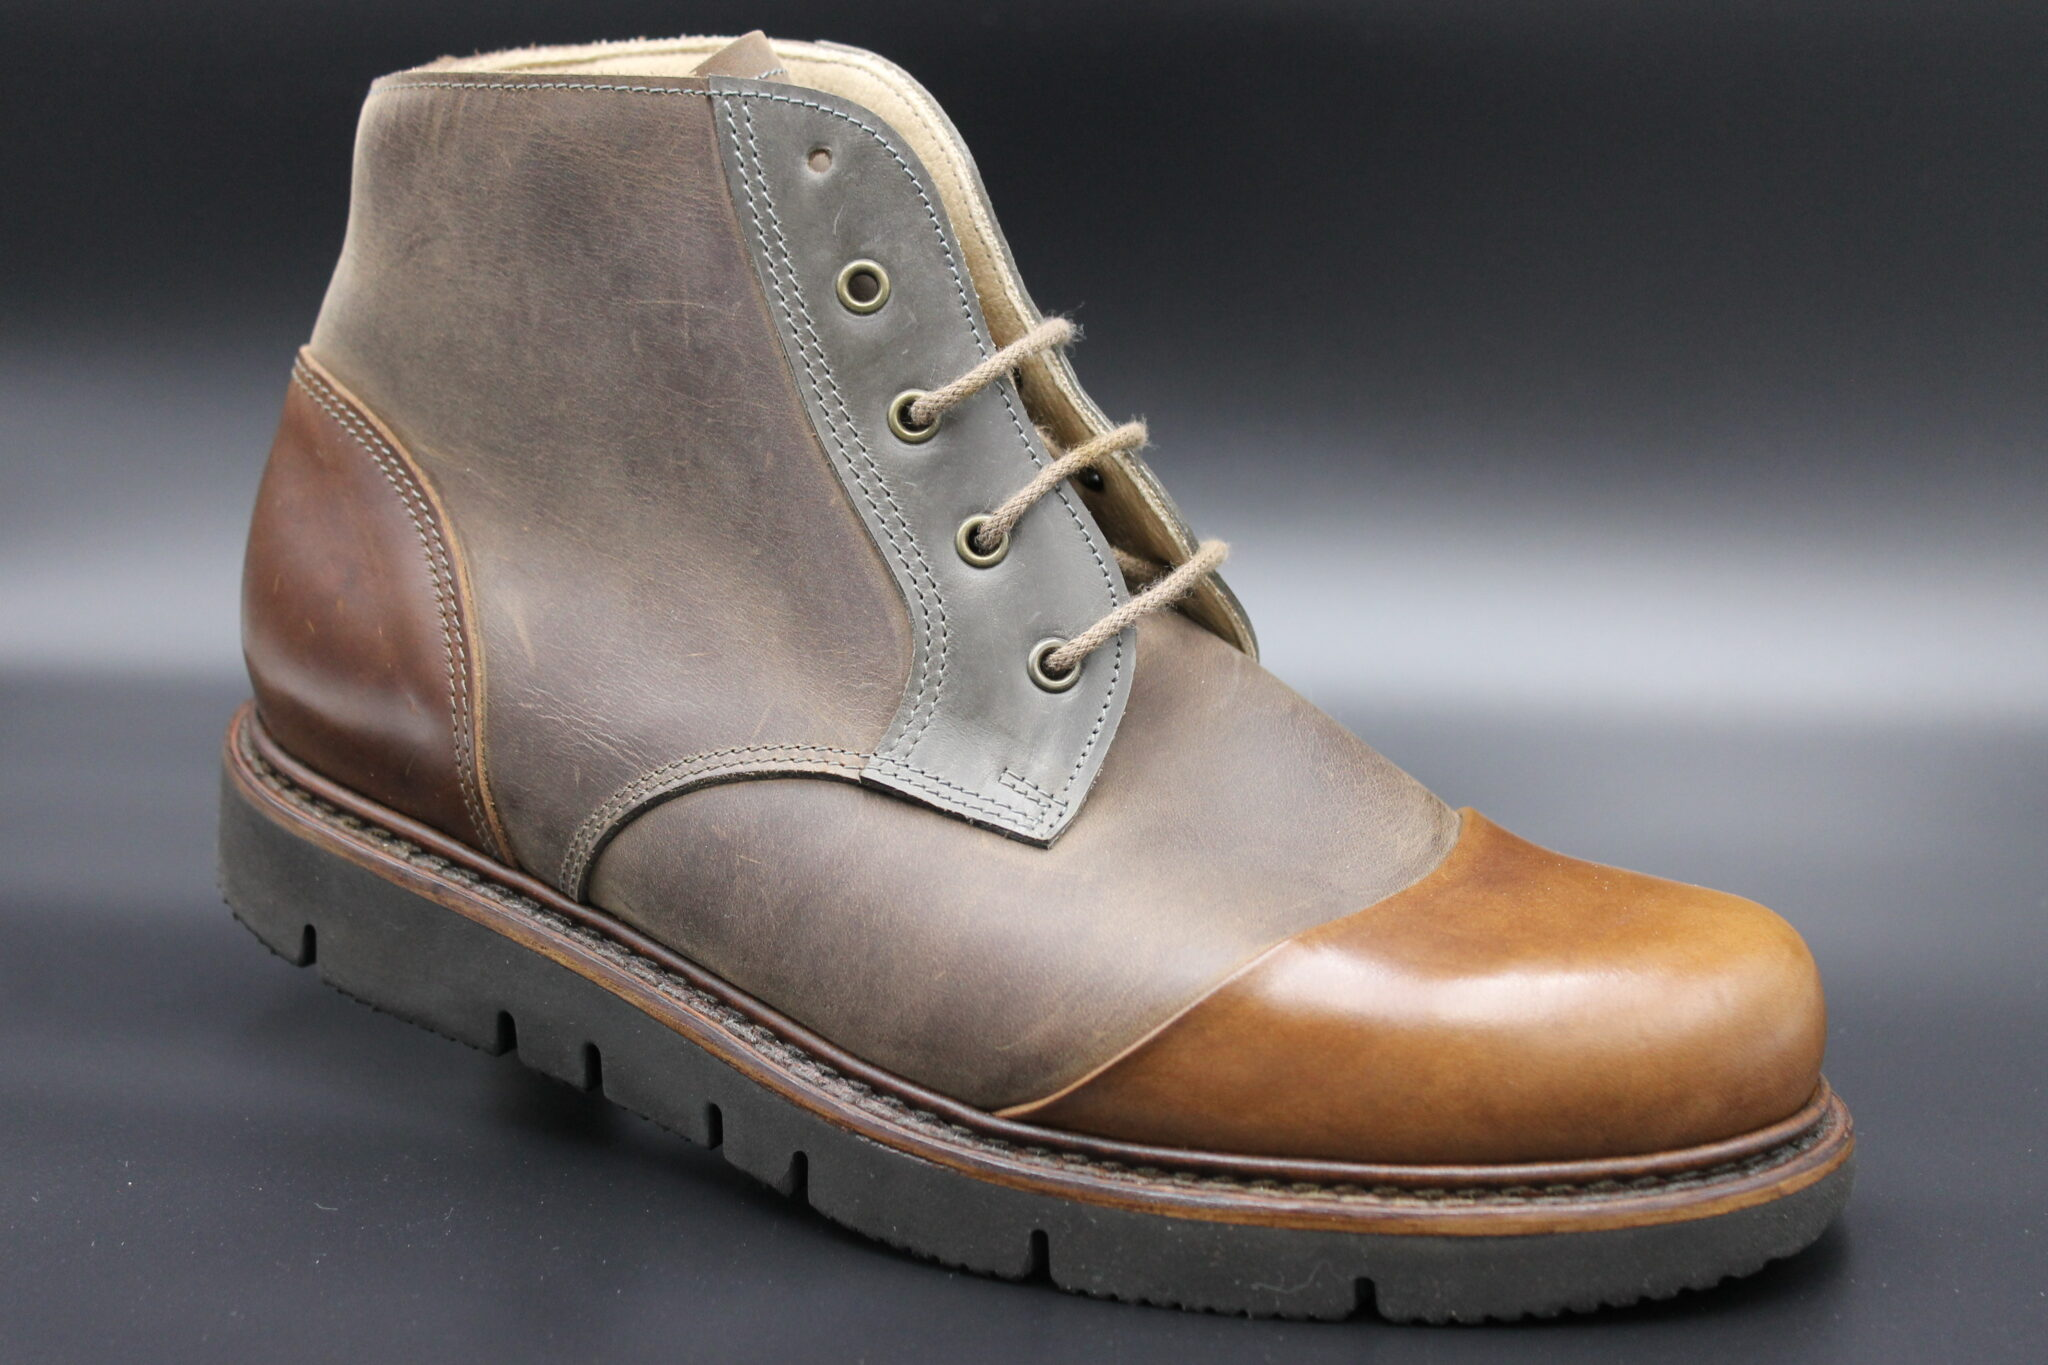 baur-ortho_exclusive-maßschuhe_stiefelette_01